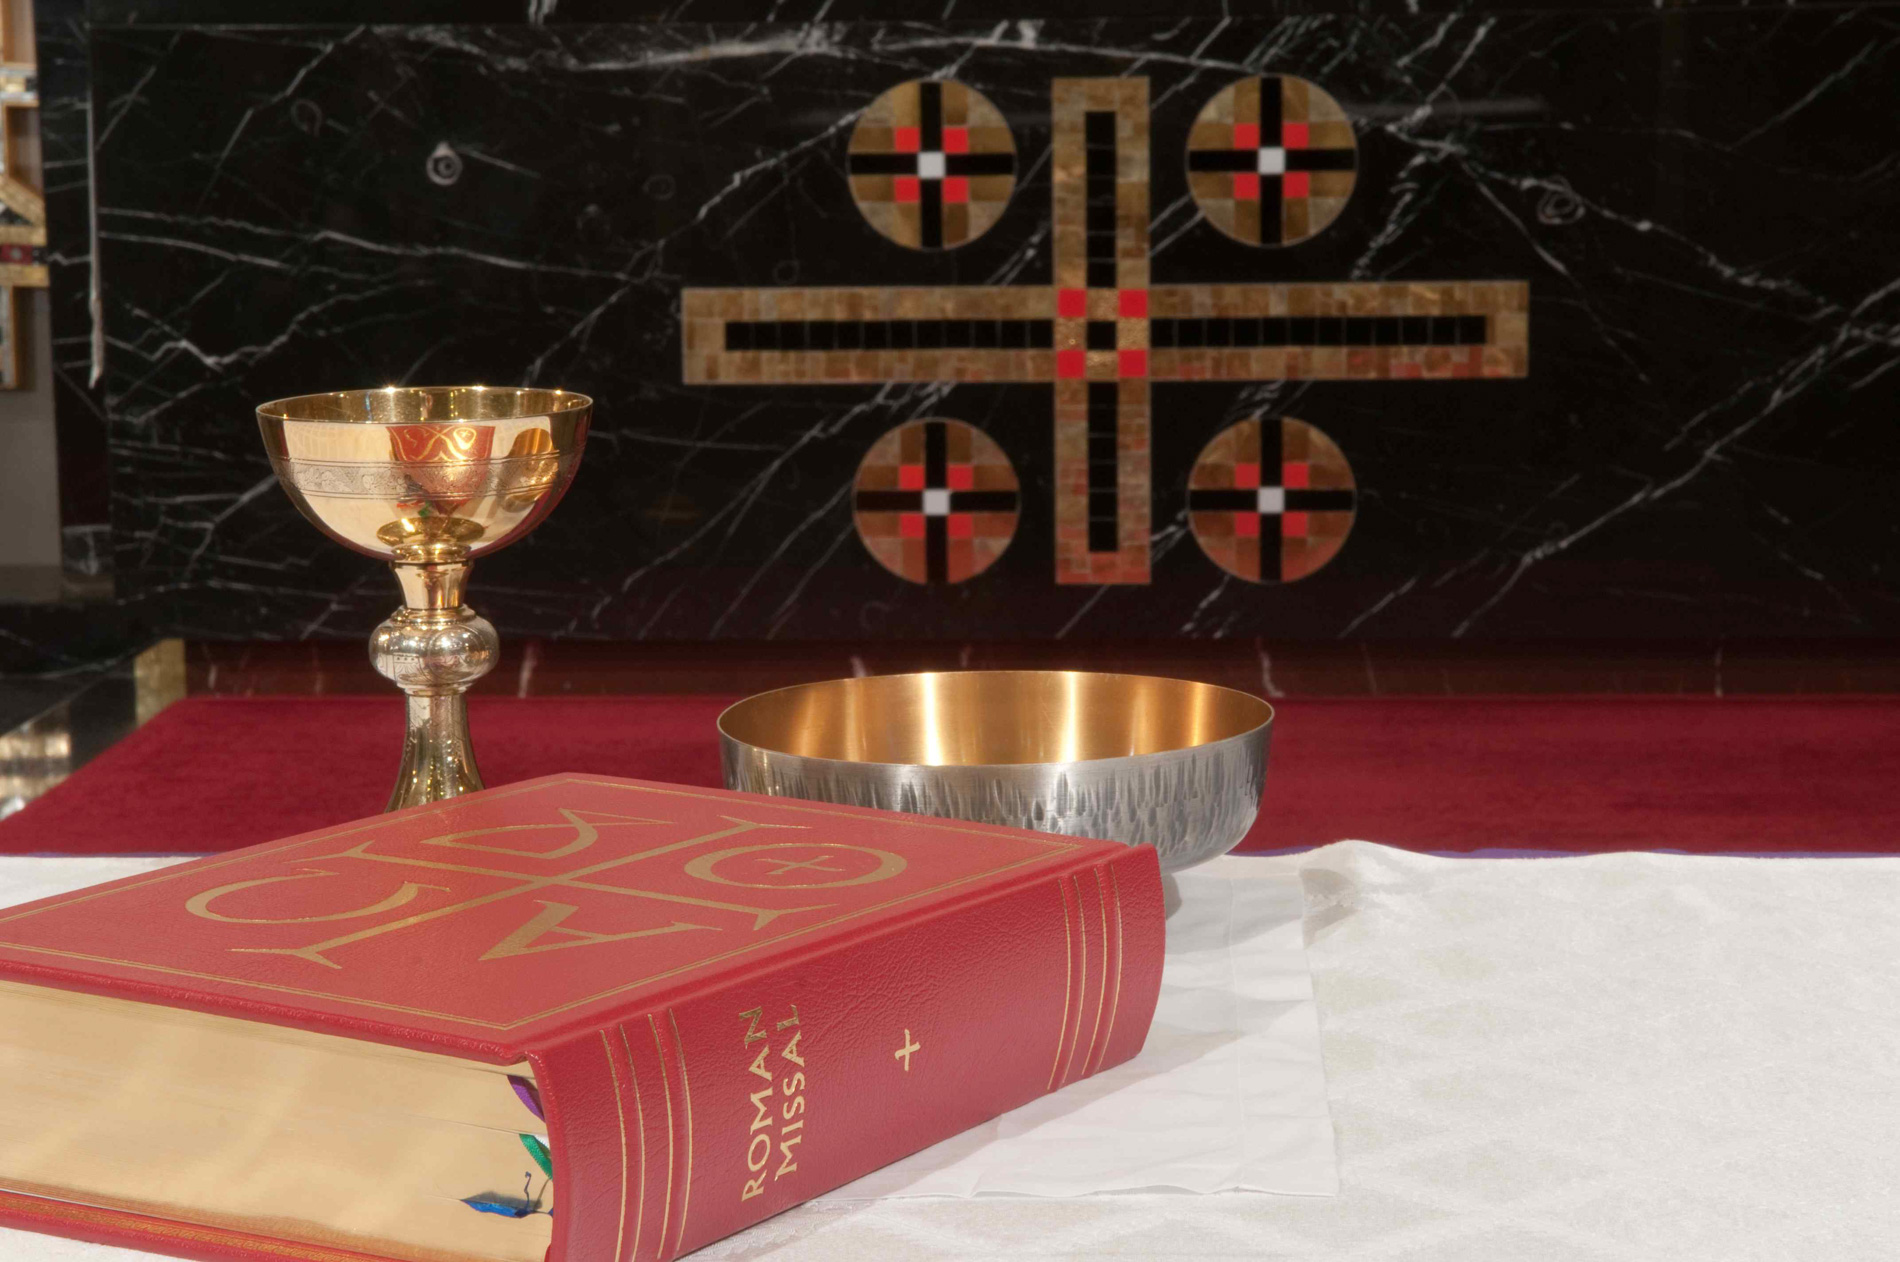 Pope John Paul II's Homily Announcing the Year of the Eucharist, the Source and Summit